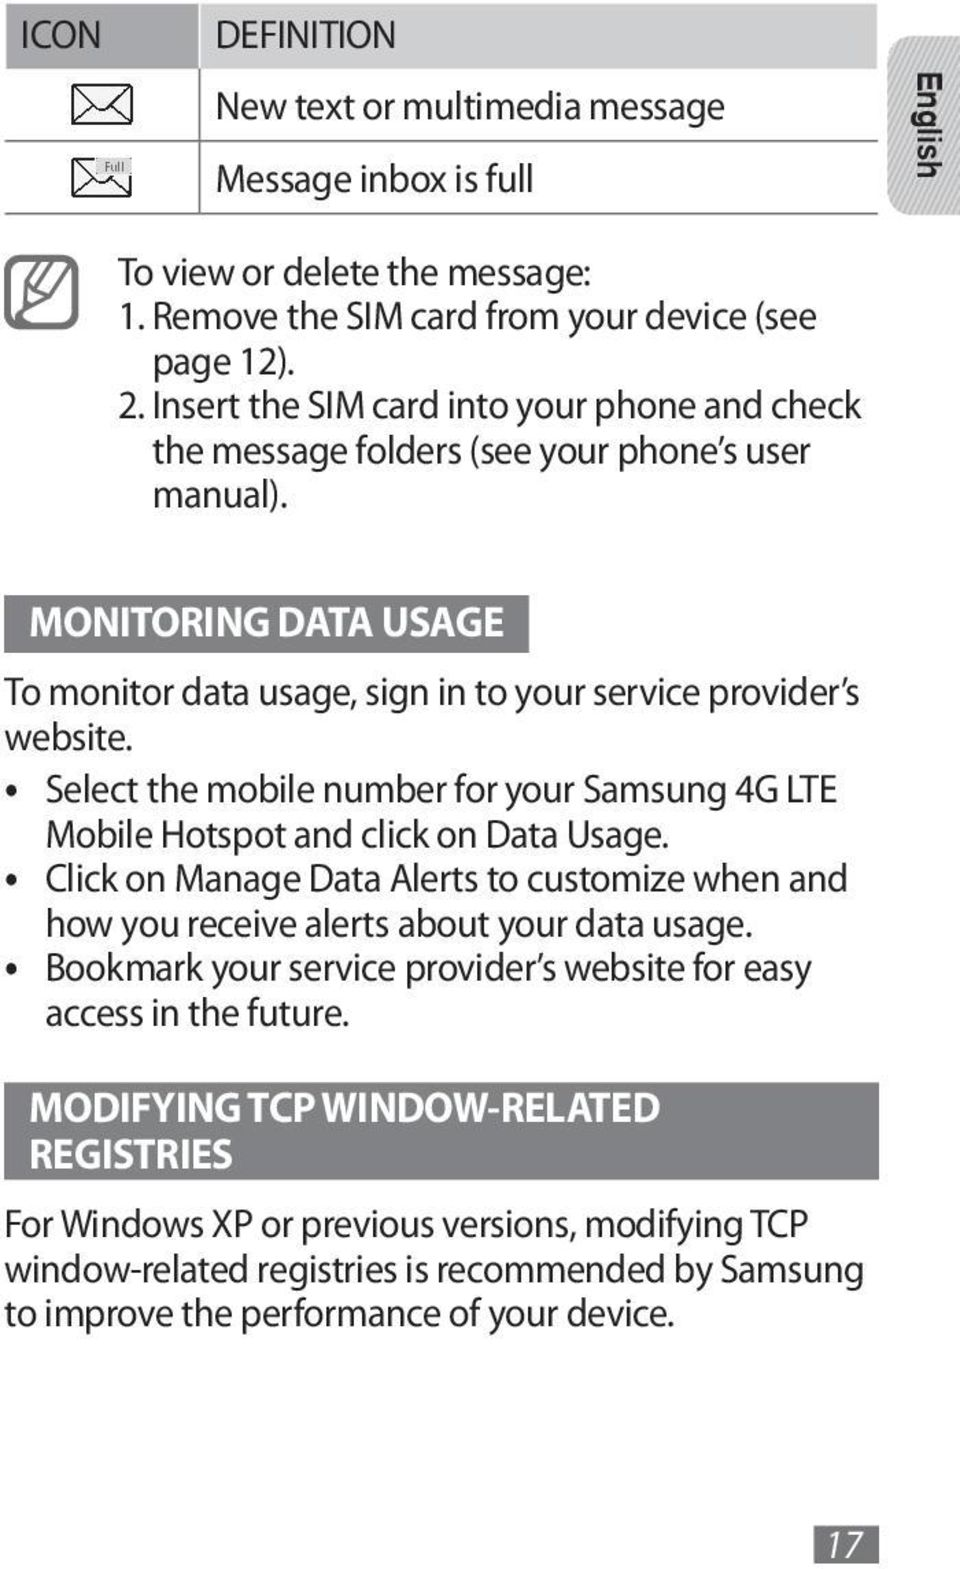 Select the mobile number for your Samsung 4G LTE Mobile Hotspot and click on Data Usage. Click on Manage Data Alerts to customize when and how you receive alerts about your data usage.